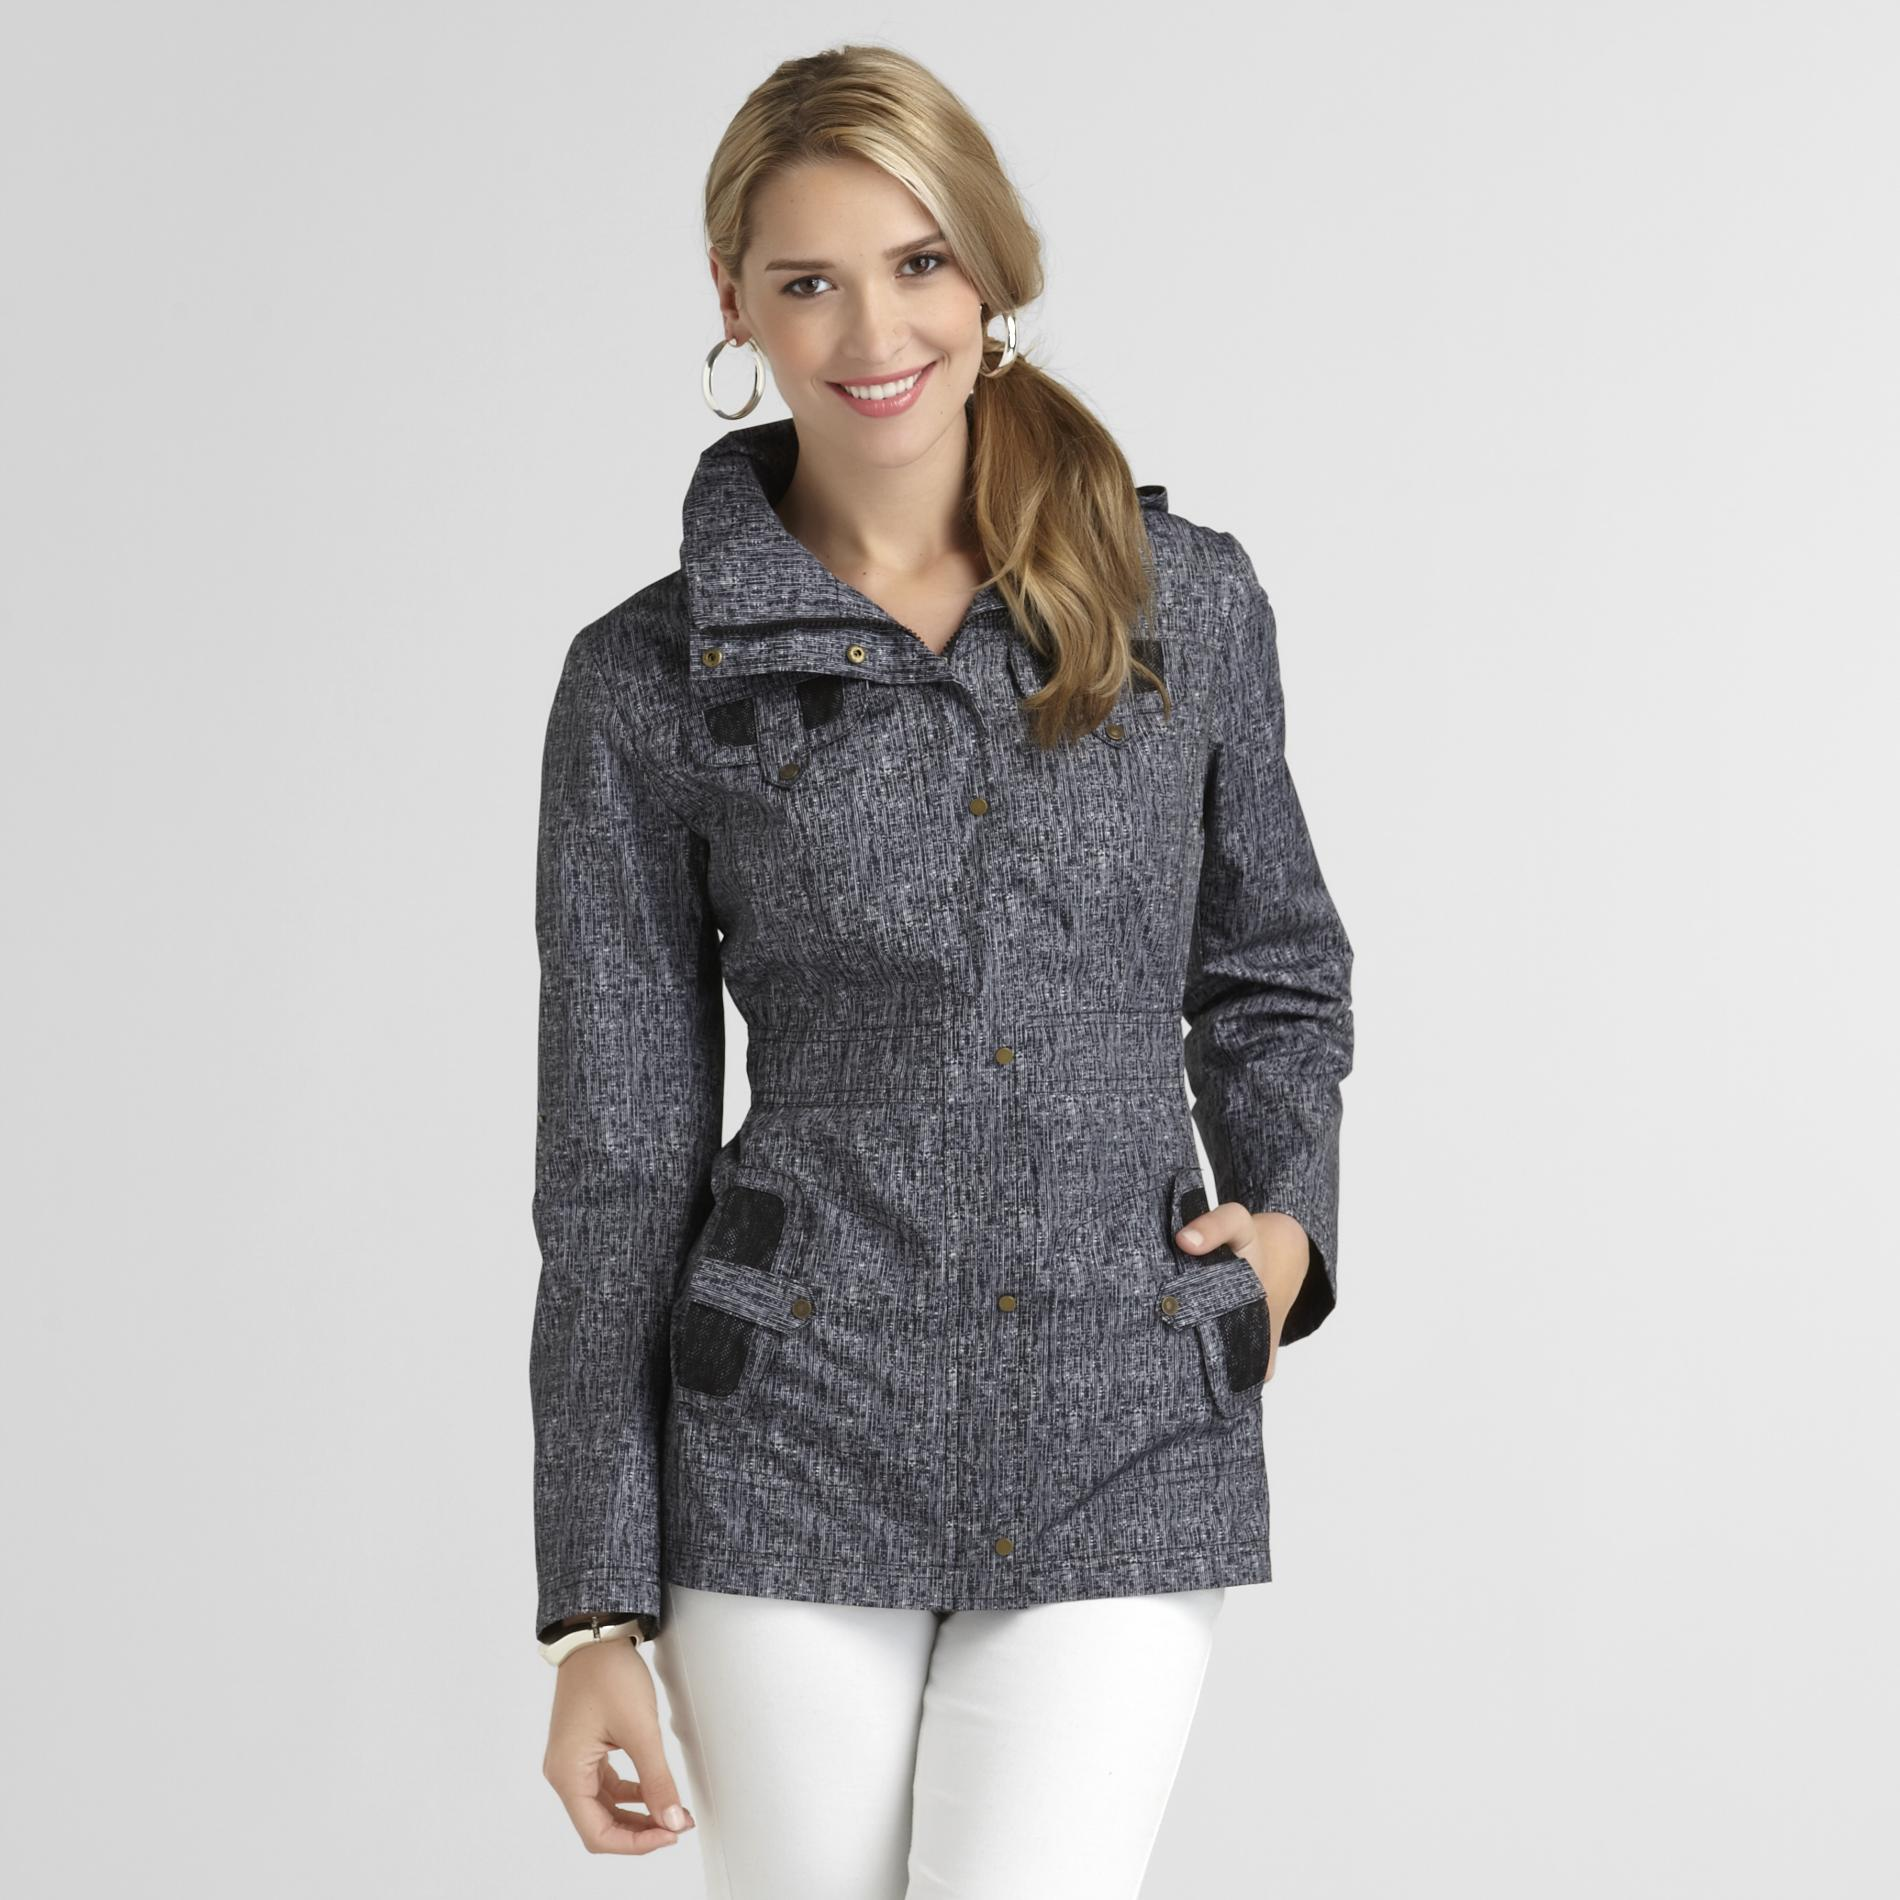 H2J Women's Hooded Jacket - Broken Stripes at Sears.com